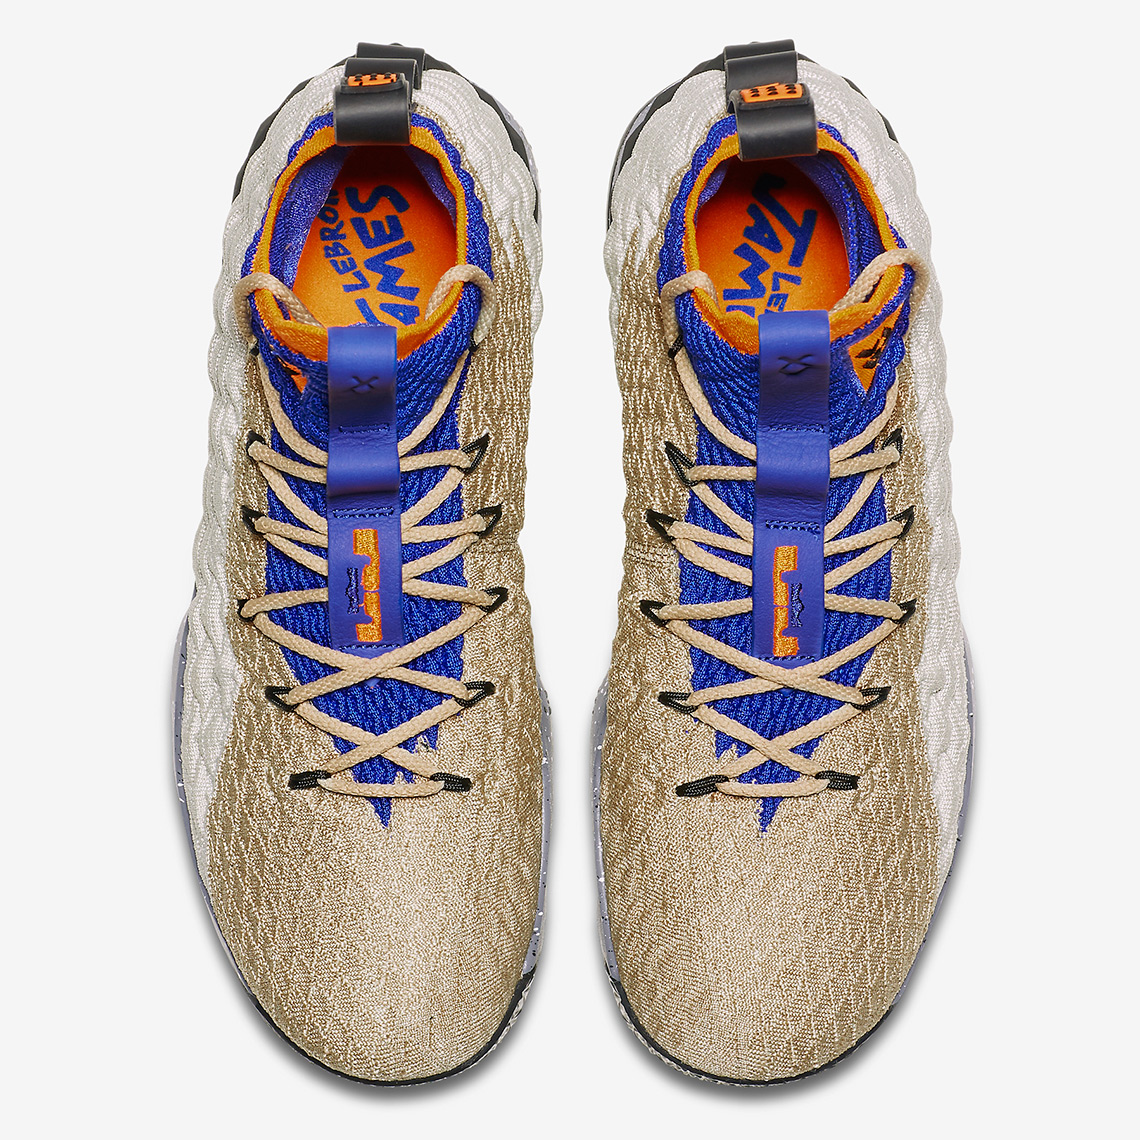 new styles 97a7d 9c985 ... Best Wholesaler Nike LeBron 15 Mowabb Release Date March 7th, 2018 200.